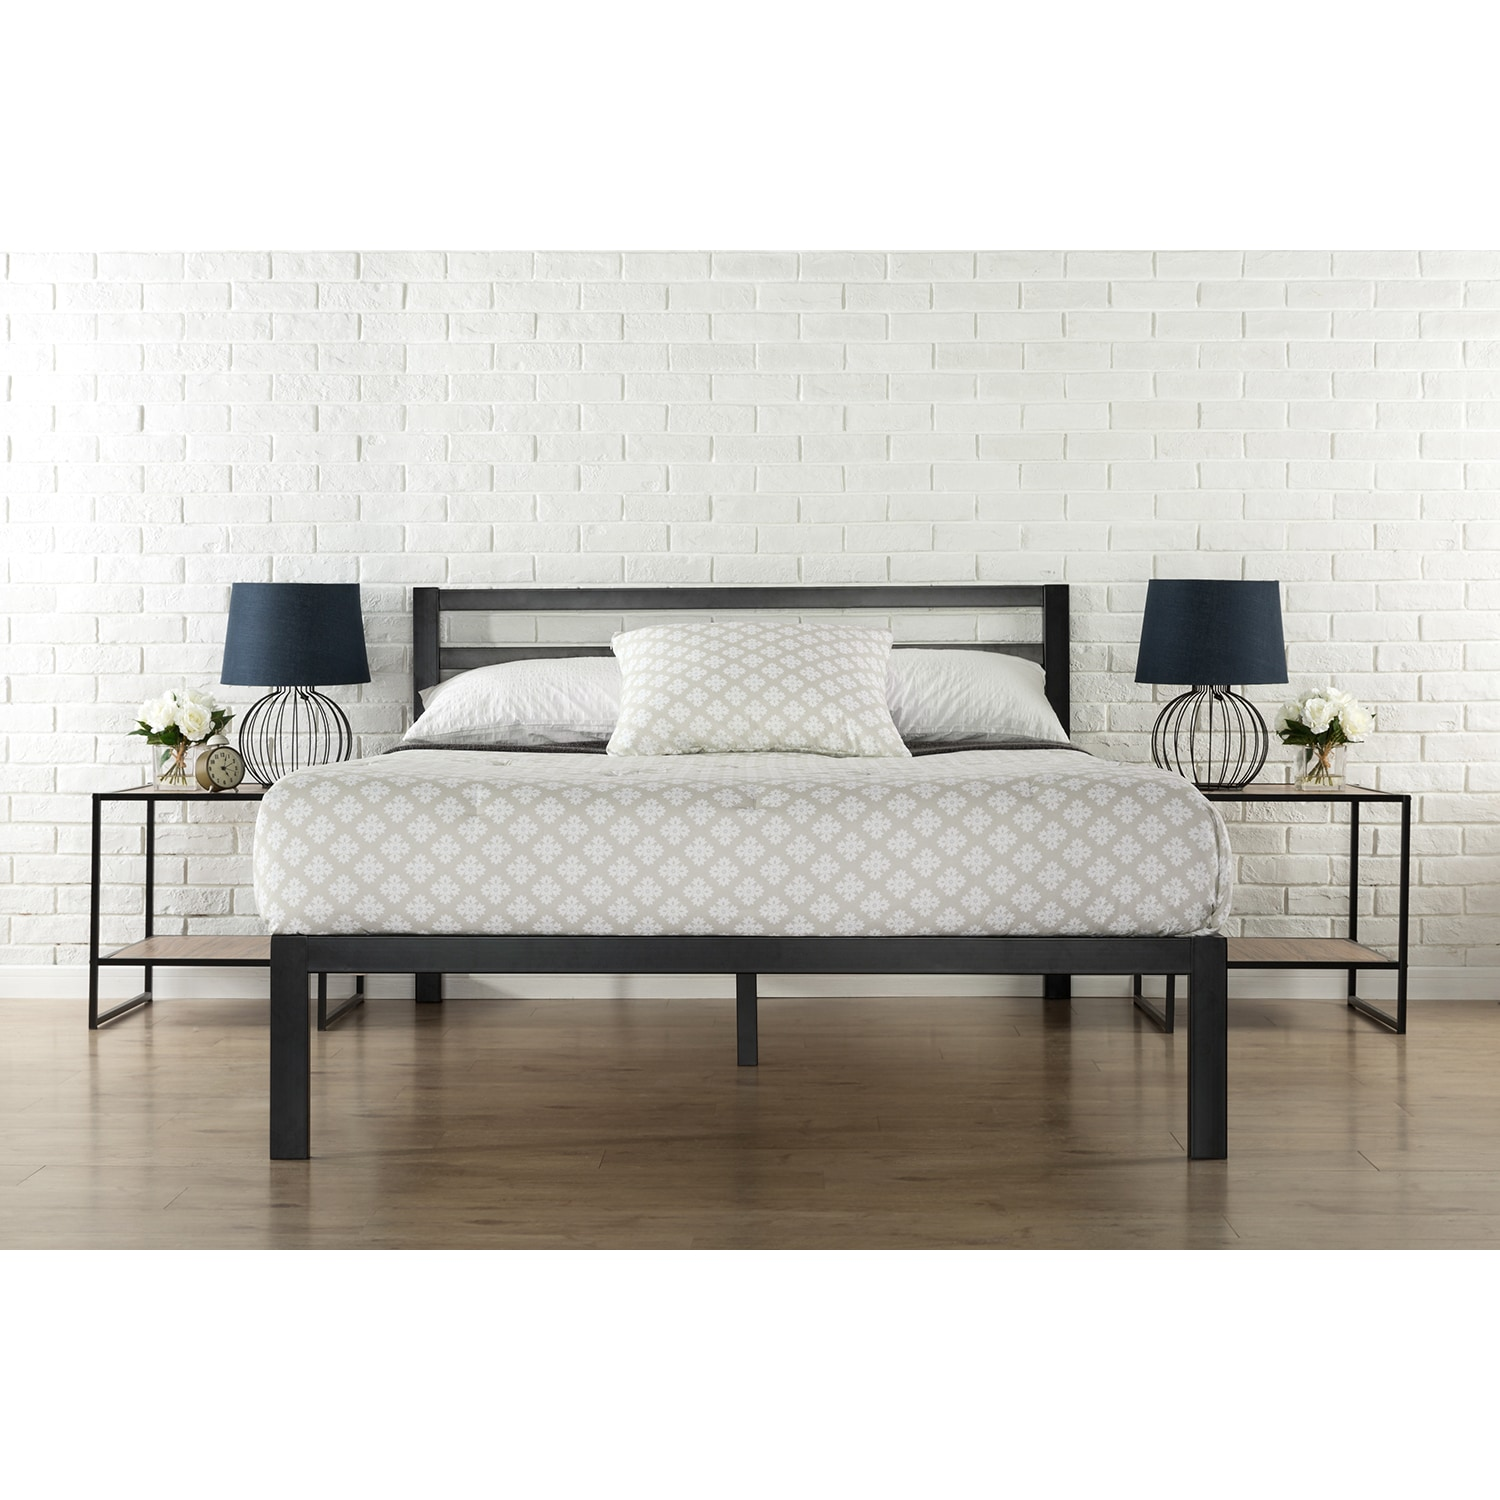 Priage 3000H Twin-Size Platform Bed Frame with Headboard ...